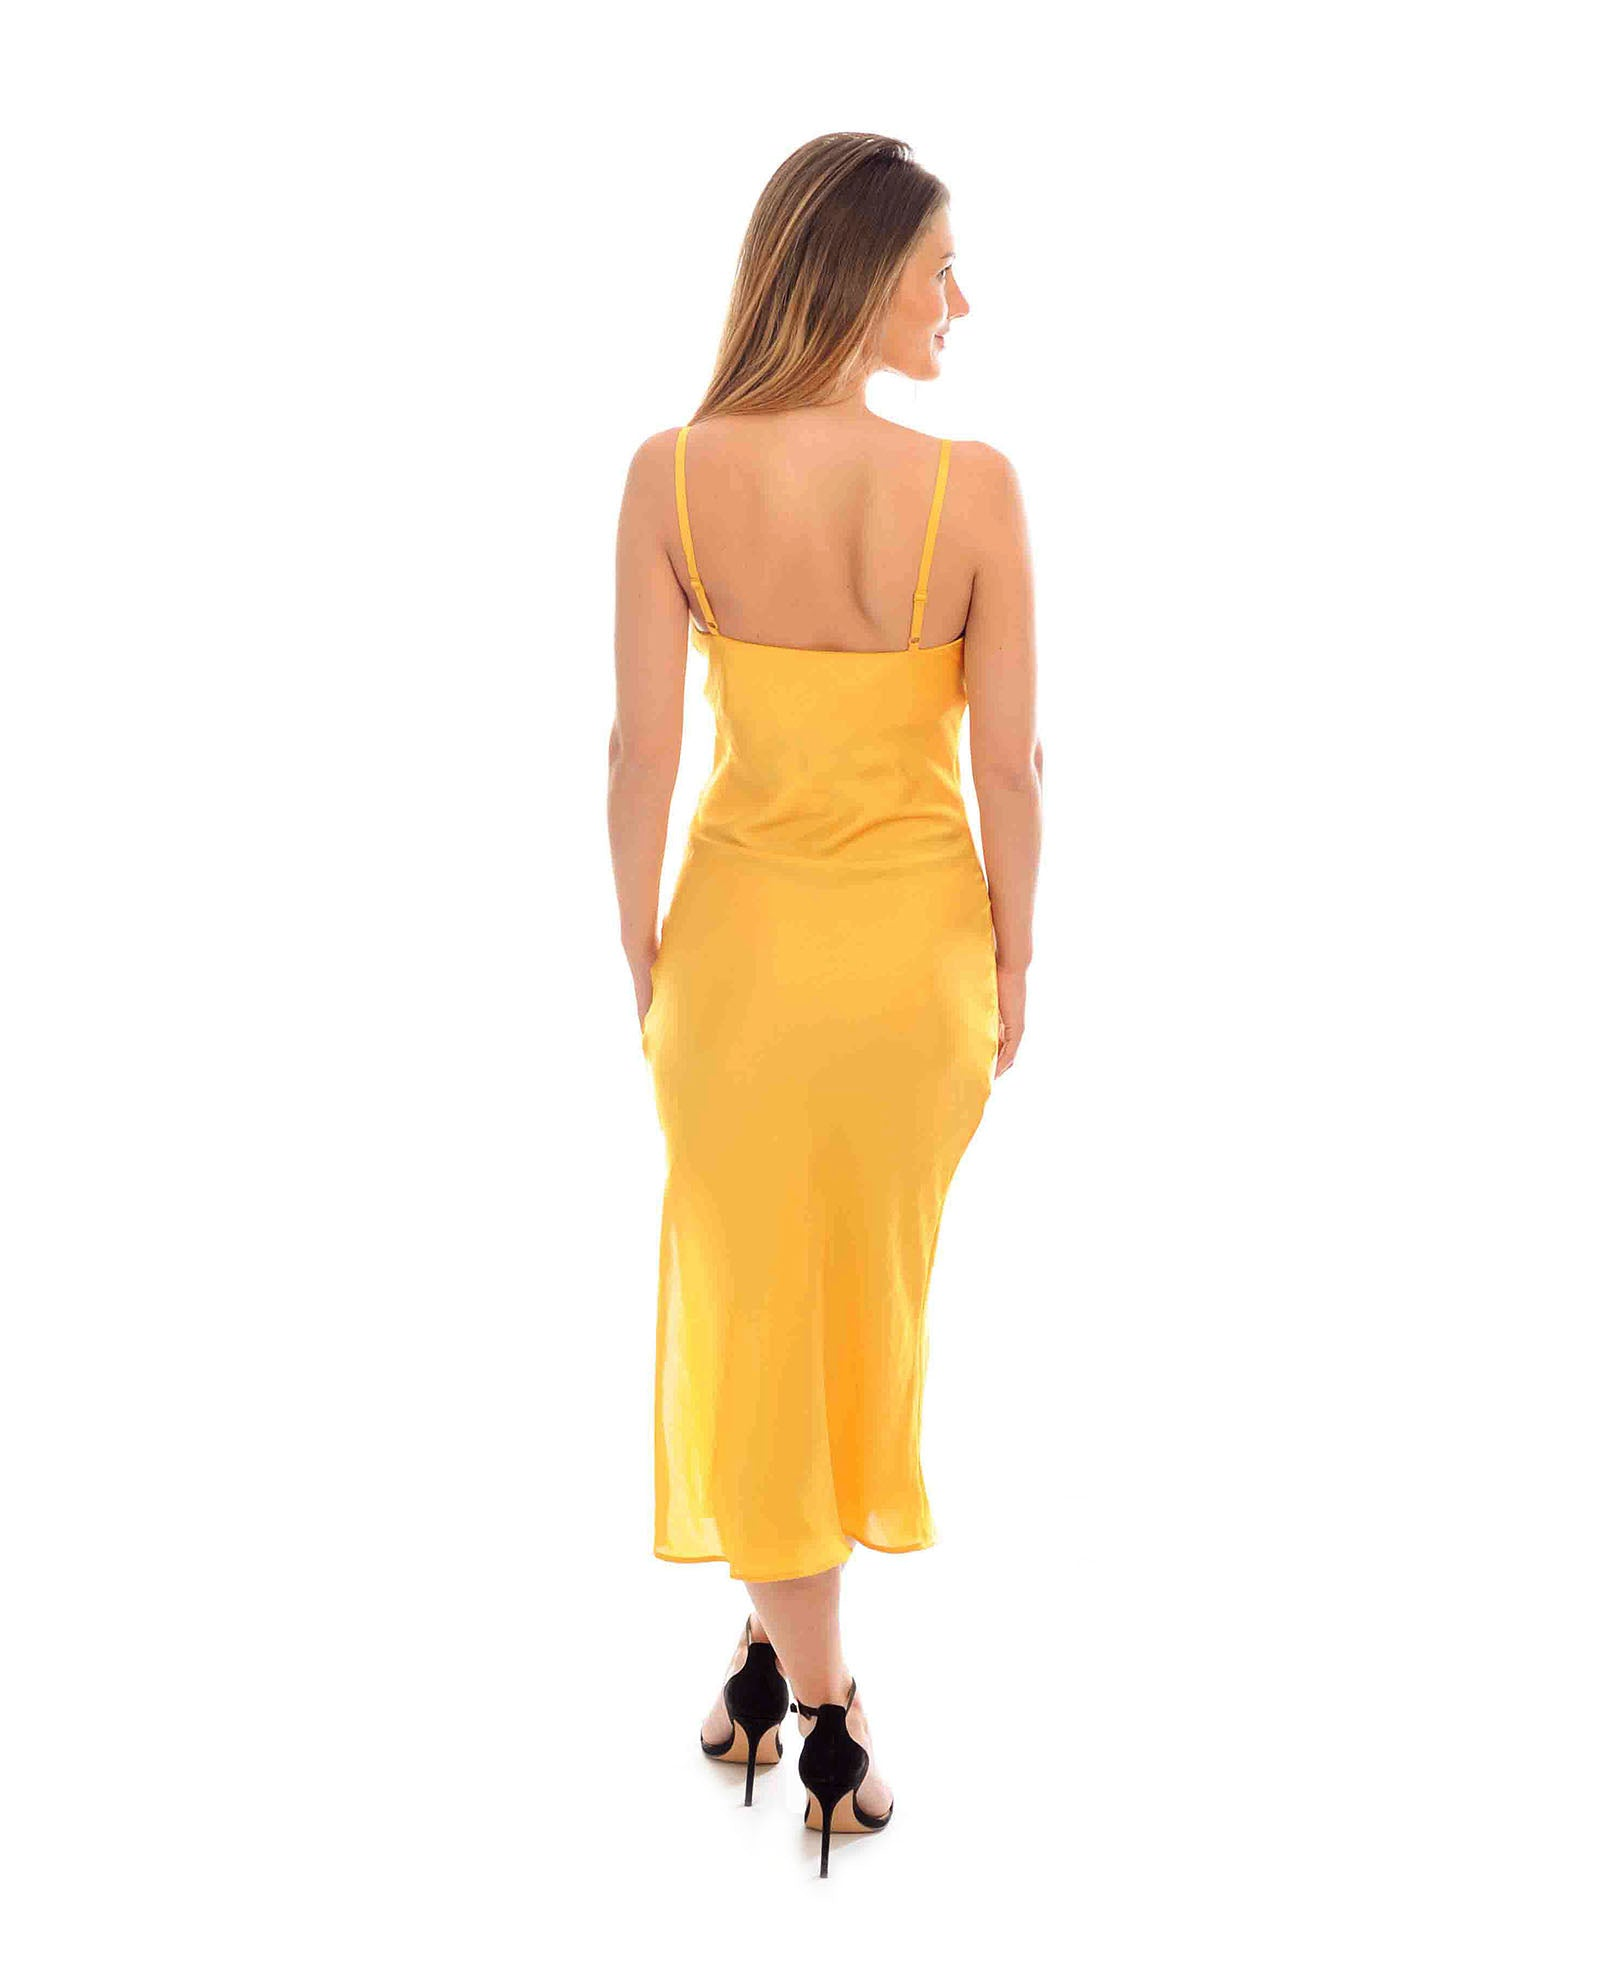 Rent a dress | Topshop yellow satin cowl neck midi dress | Hirestreetuk.com